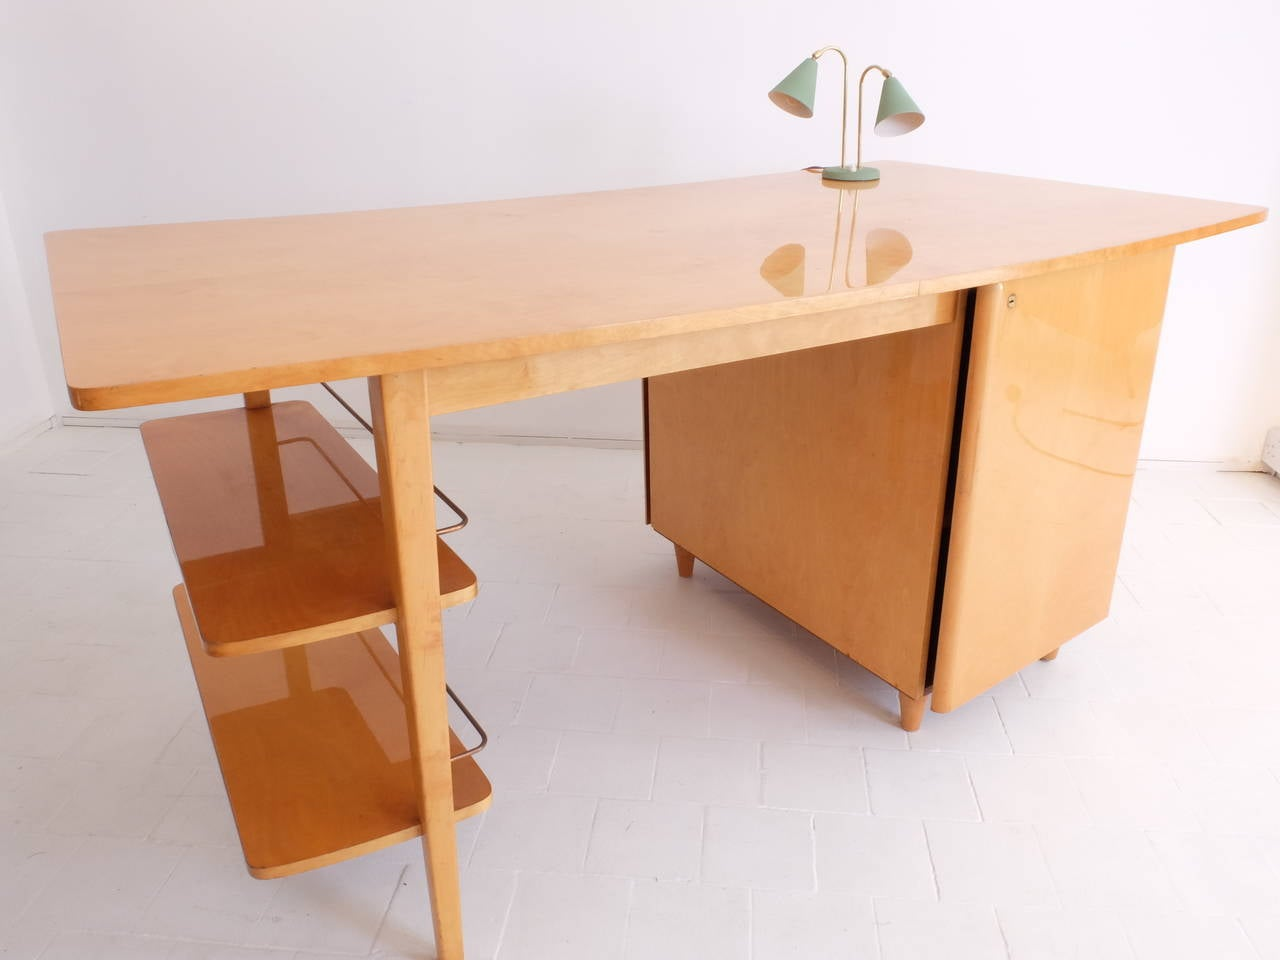 Fabulous Mid Century Double Sided Executive Birch Desk Imexcotra Download Free Architecture Designs Scobabritishbridgeorg